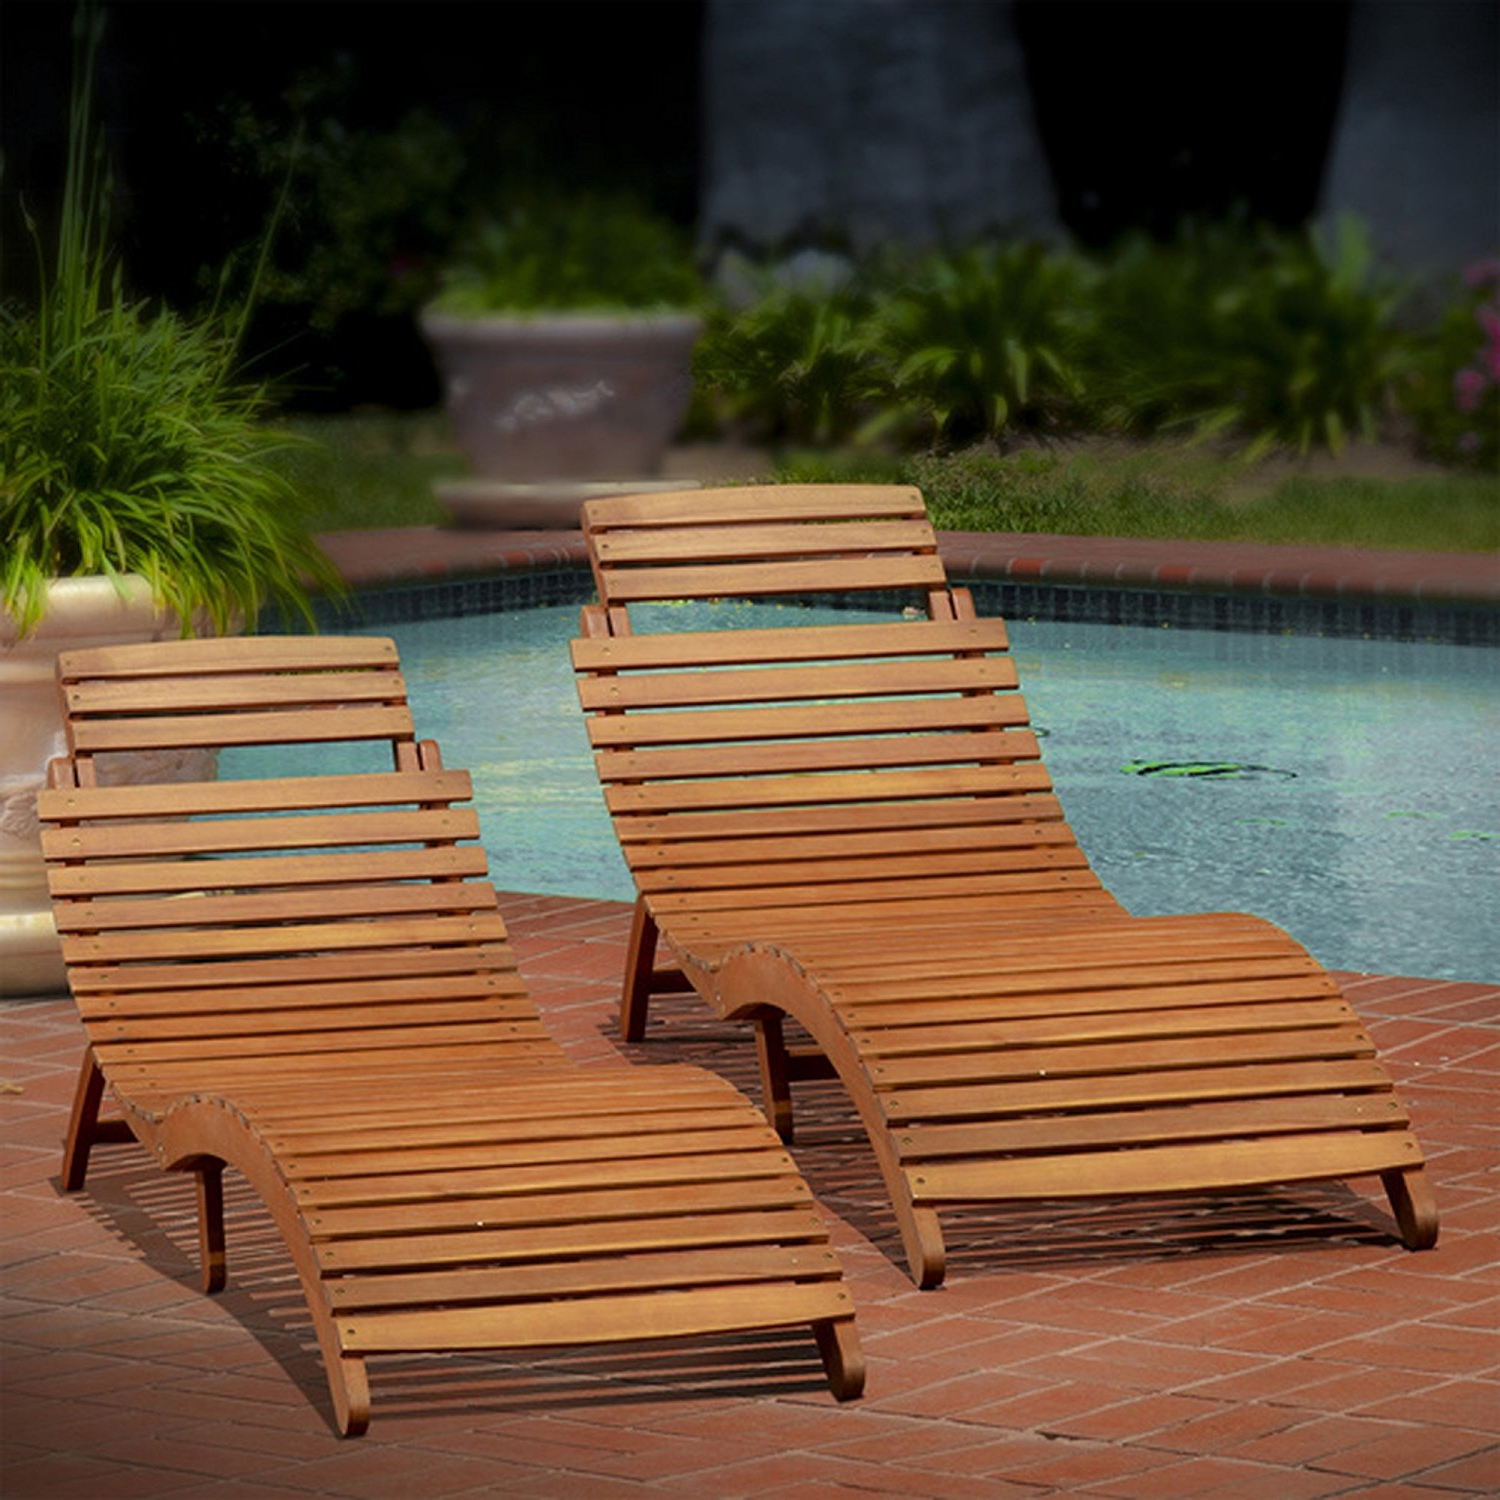 Cheap Wood Chaise Lounge Outdoor, Find Wood Chaise Lounge With Regard To Widely Used Outdoor Acacia Wood Chaise Lounges And Cushion Sets (View 4 of 25)